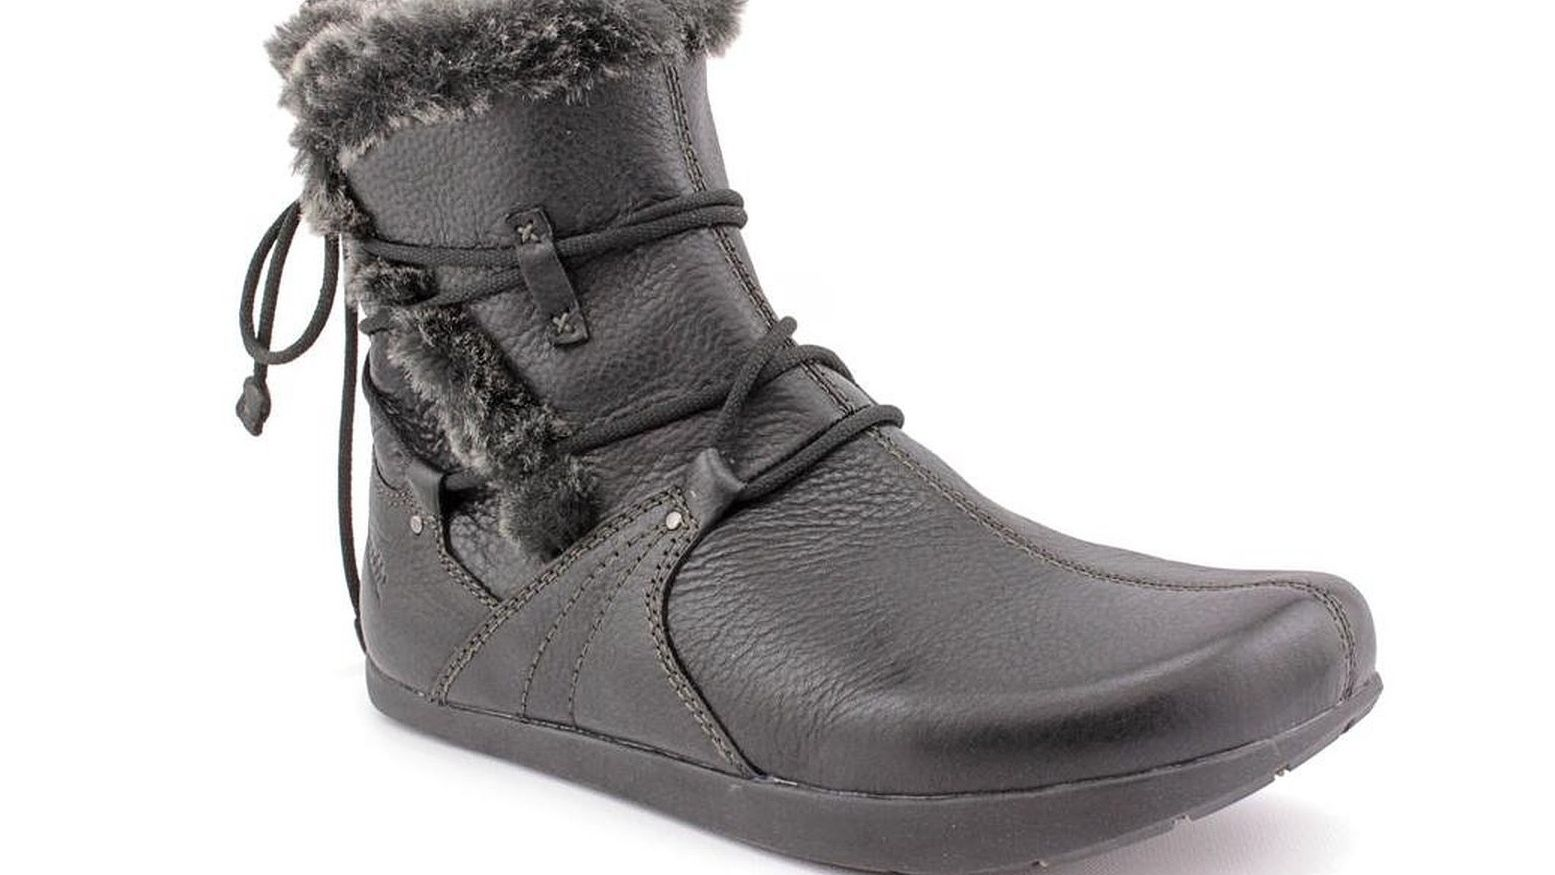 f00f56362c80f Kalso Earth Shoe Boots Review